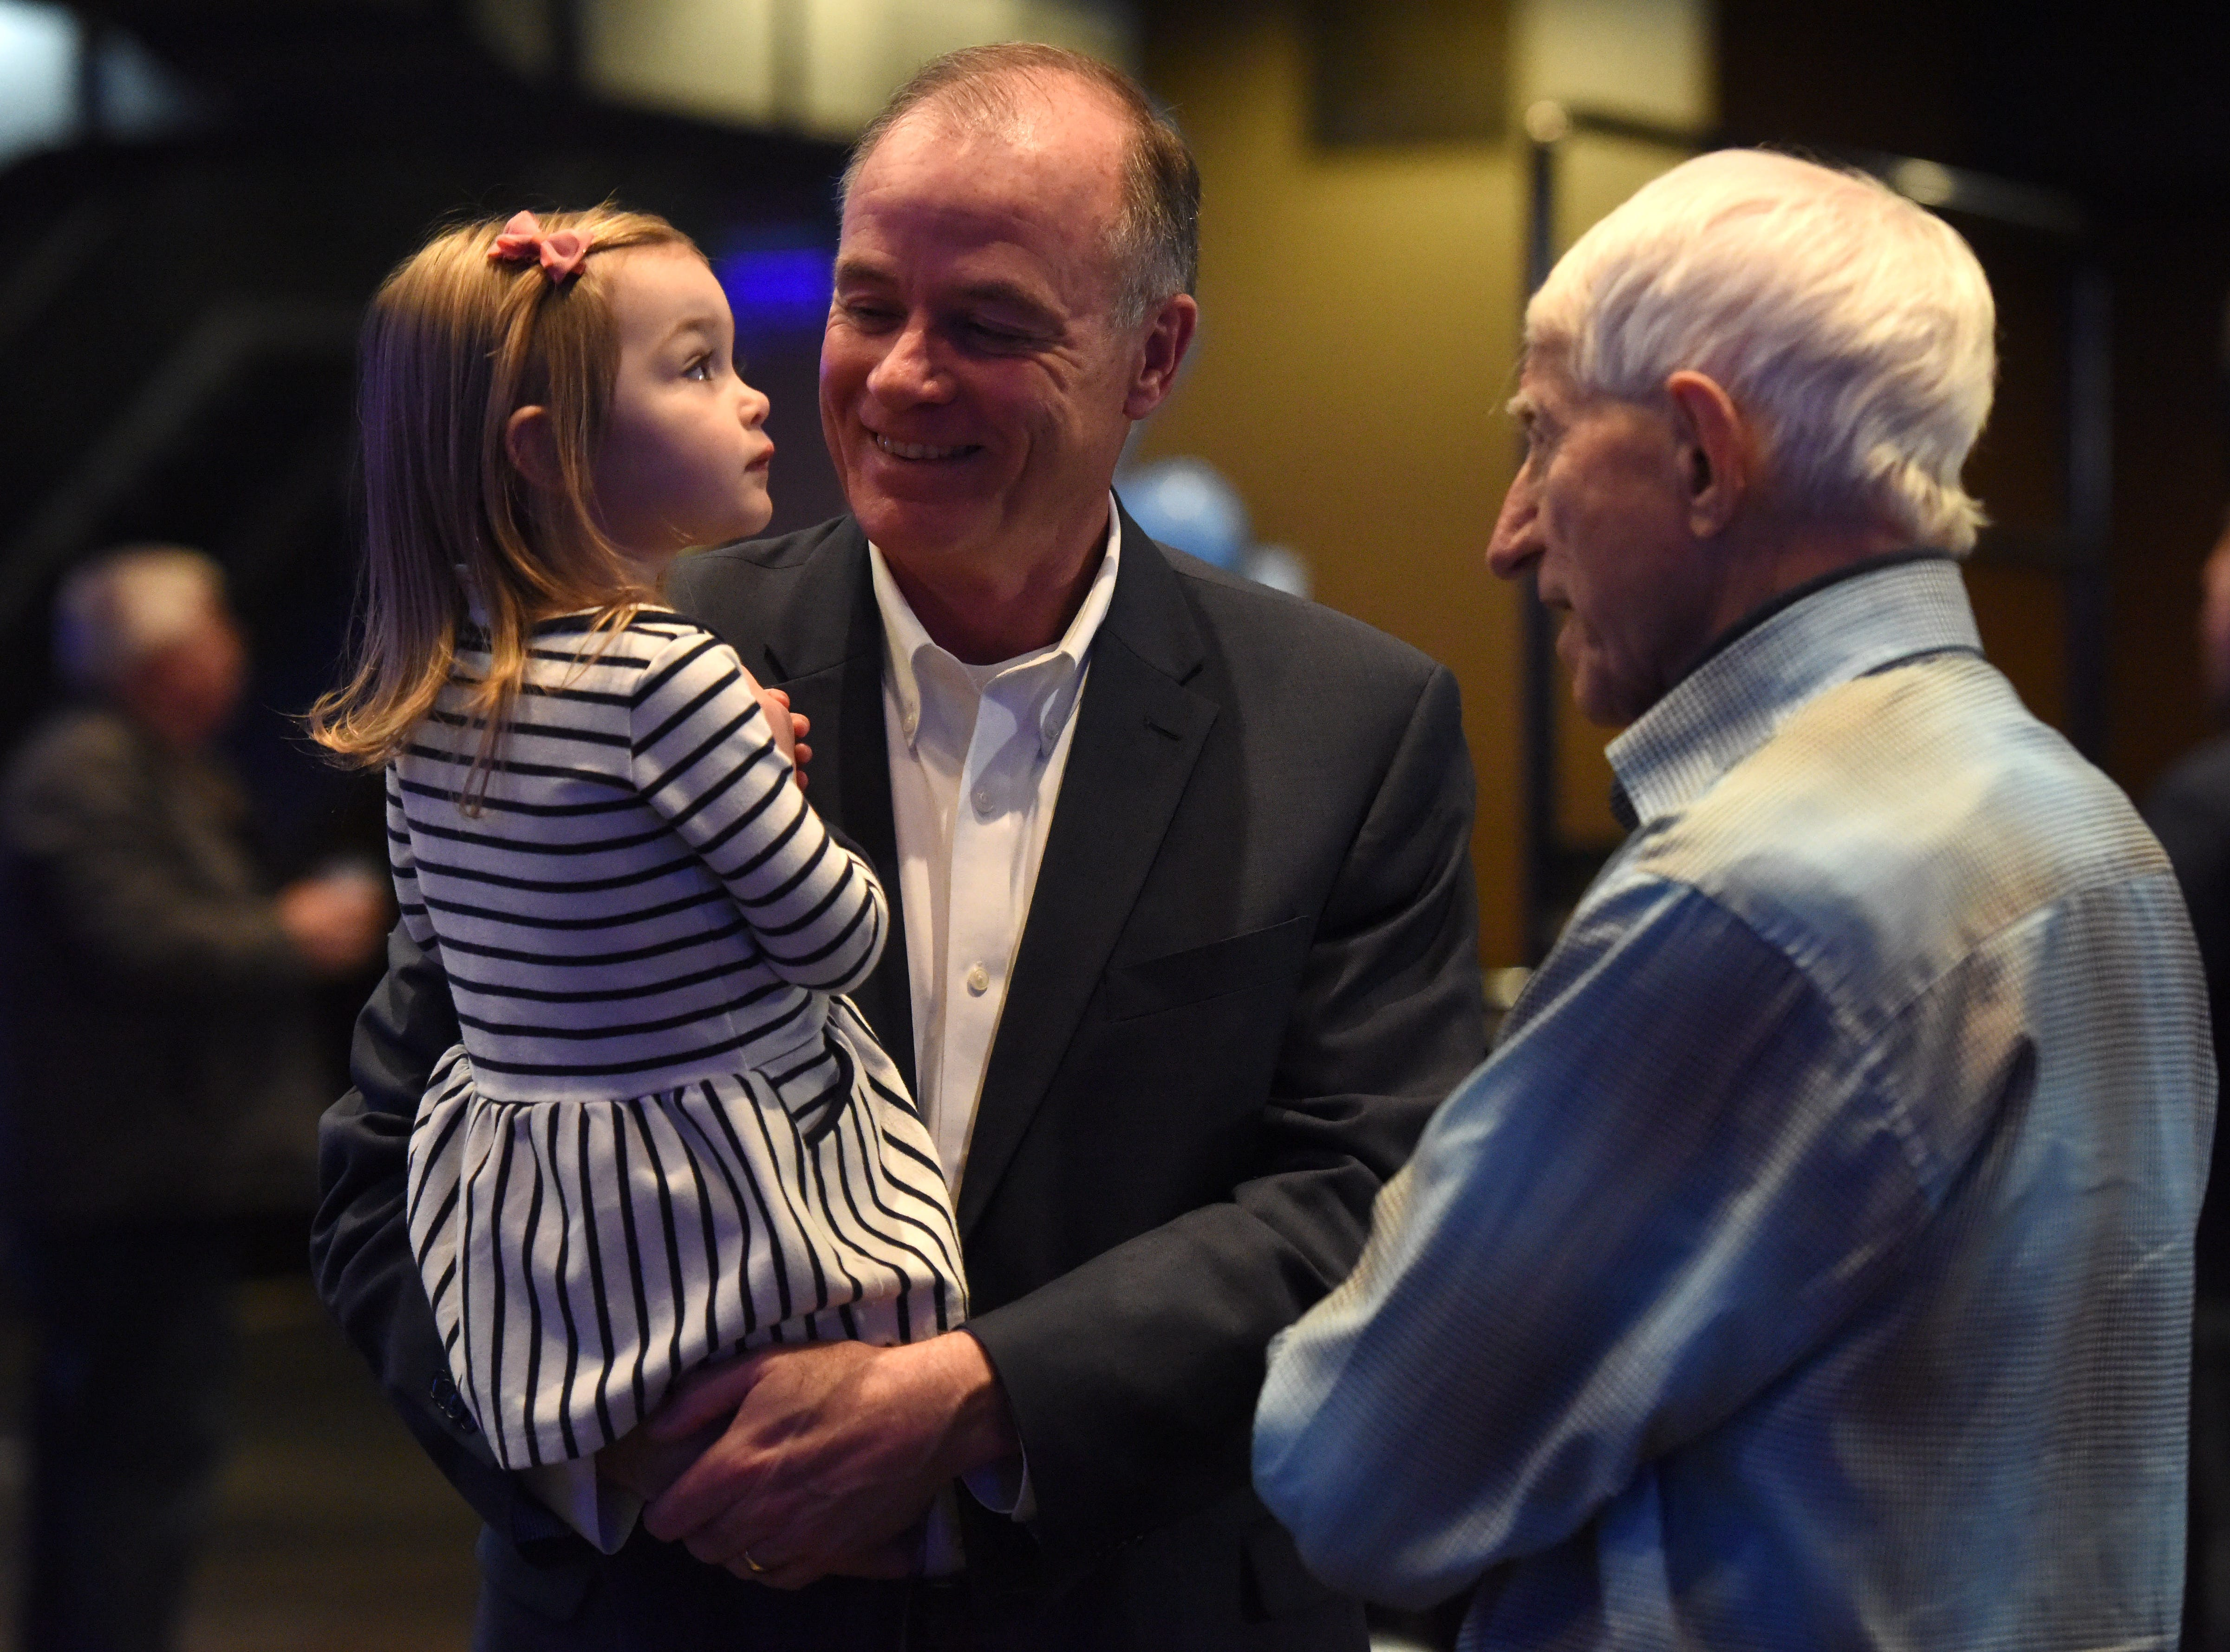 Tim Bjorkman speaks with Mike Saba, district nine candidate, while holding his granddaughter at the Democratic night party, Tuesday, Nov. 6, 2018 at The District in Sioux Falls, S.D.